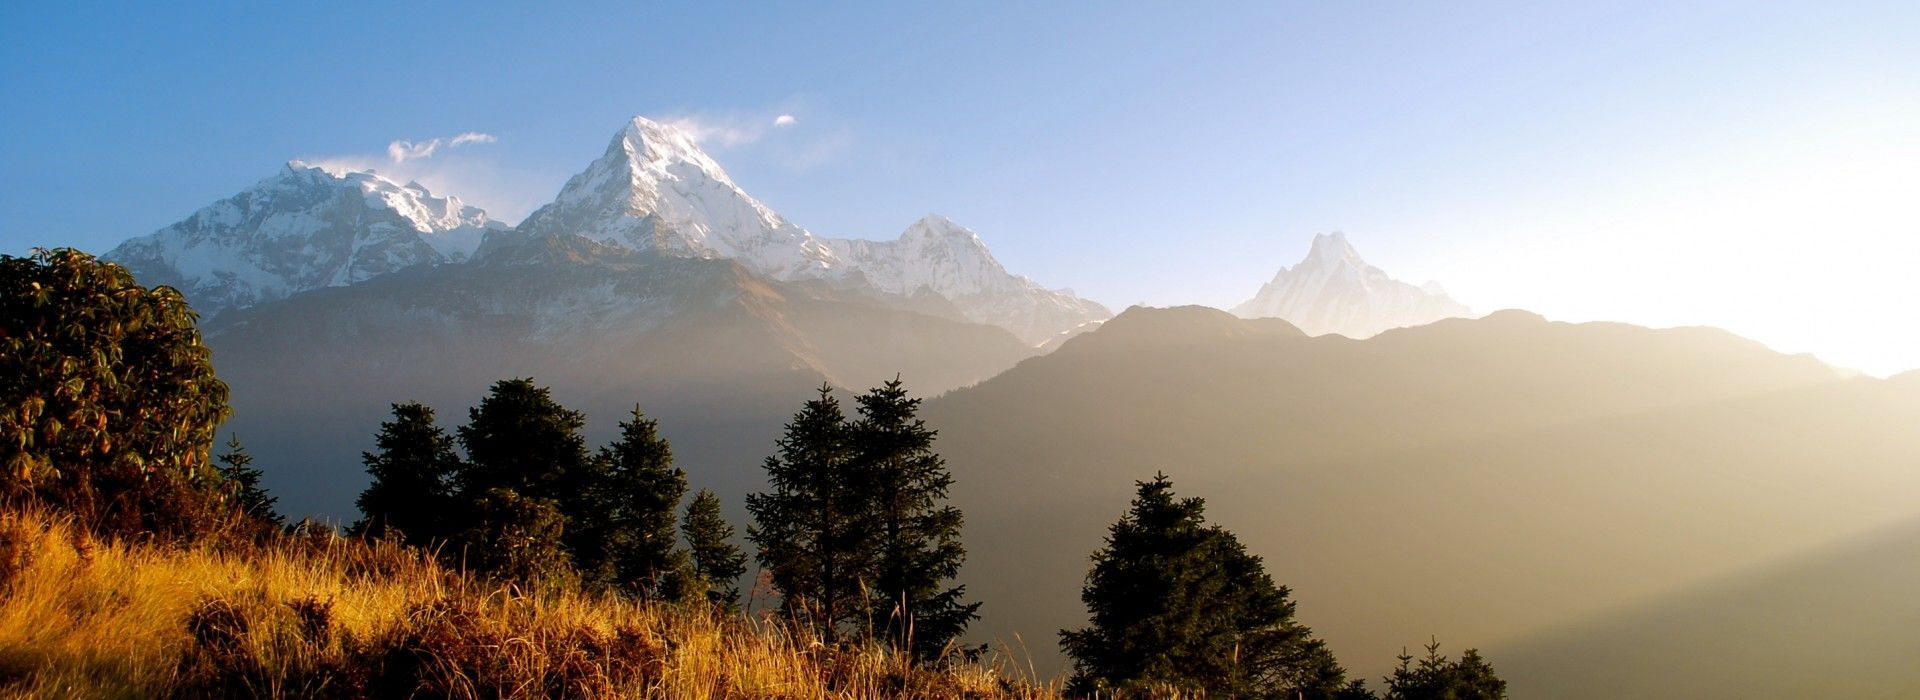 Sightseeing, attractions, culture and history Tours in Everest Region